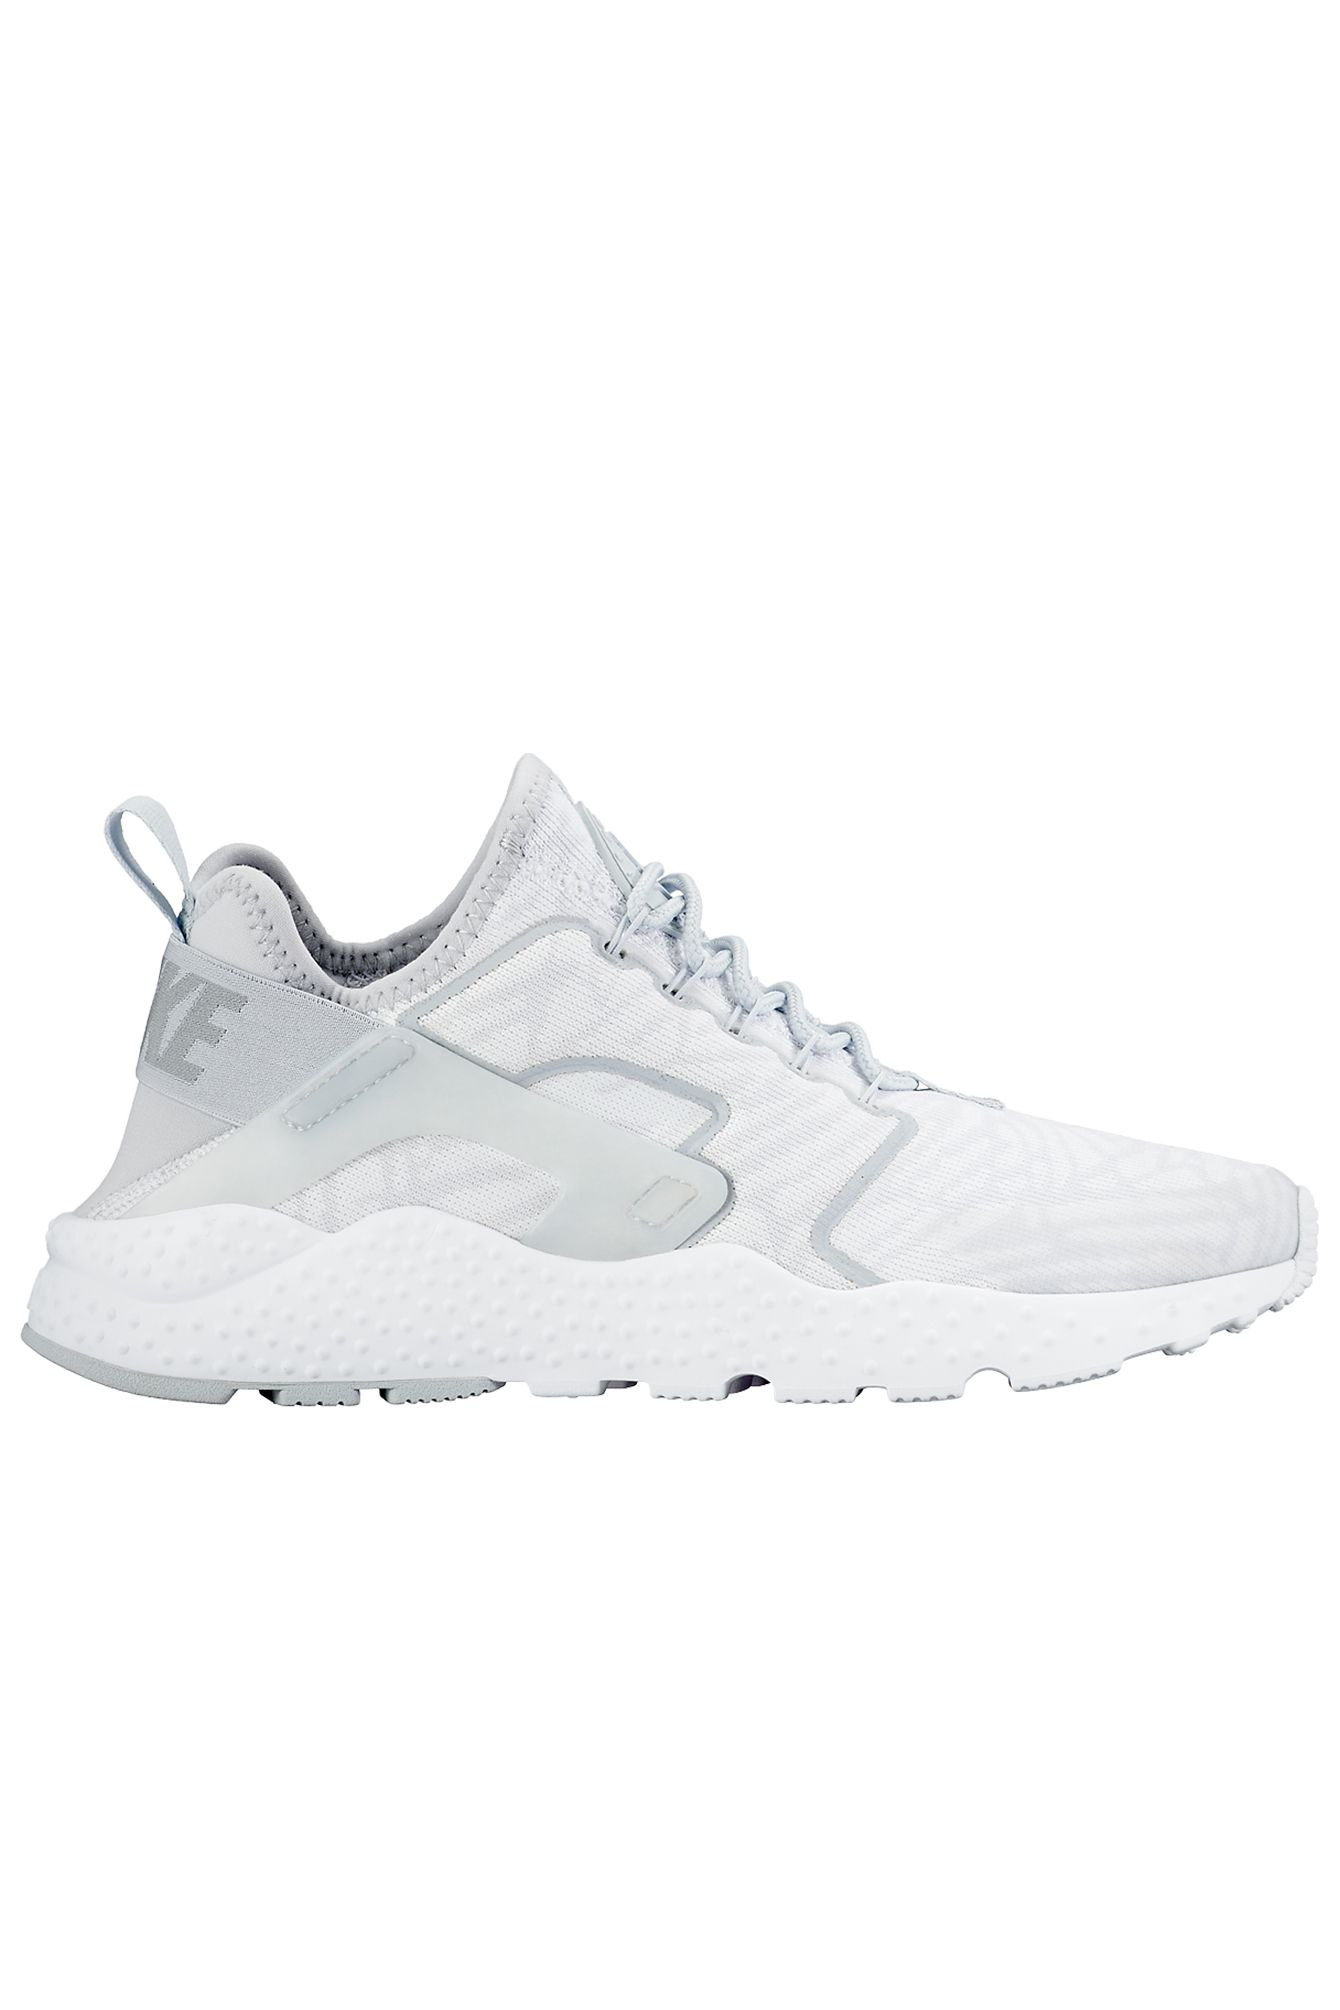 Nike Air Huarache Run Ultra Jacquard – White / Metallic Silver / Wolf Grey